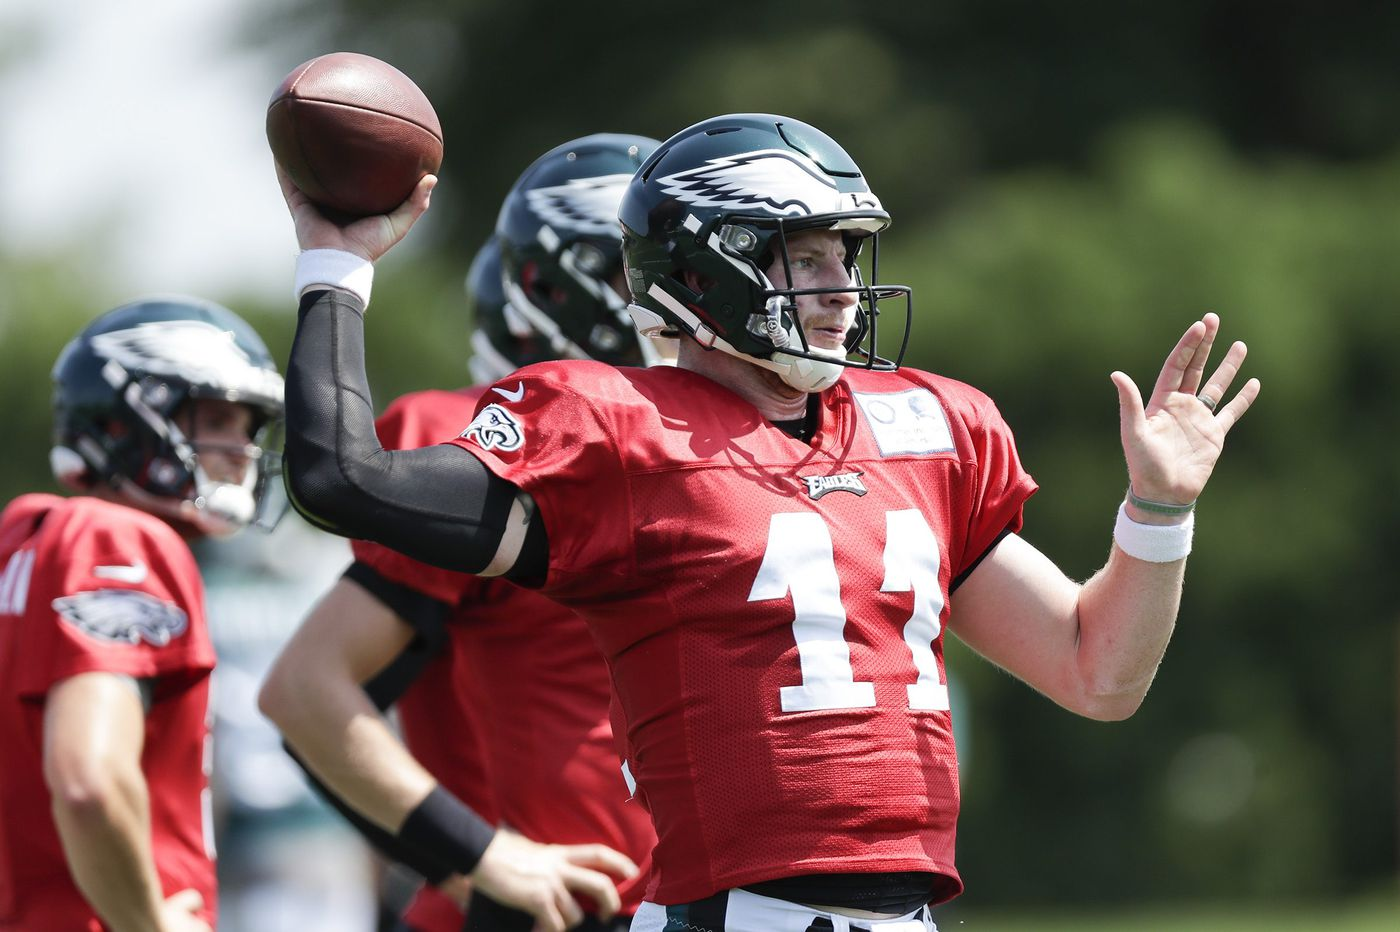 Eagles are poised for another era of NFC East dominance   David Murphy